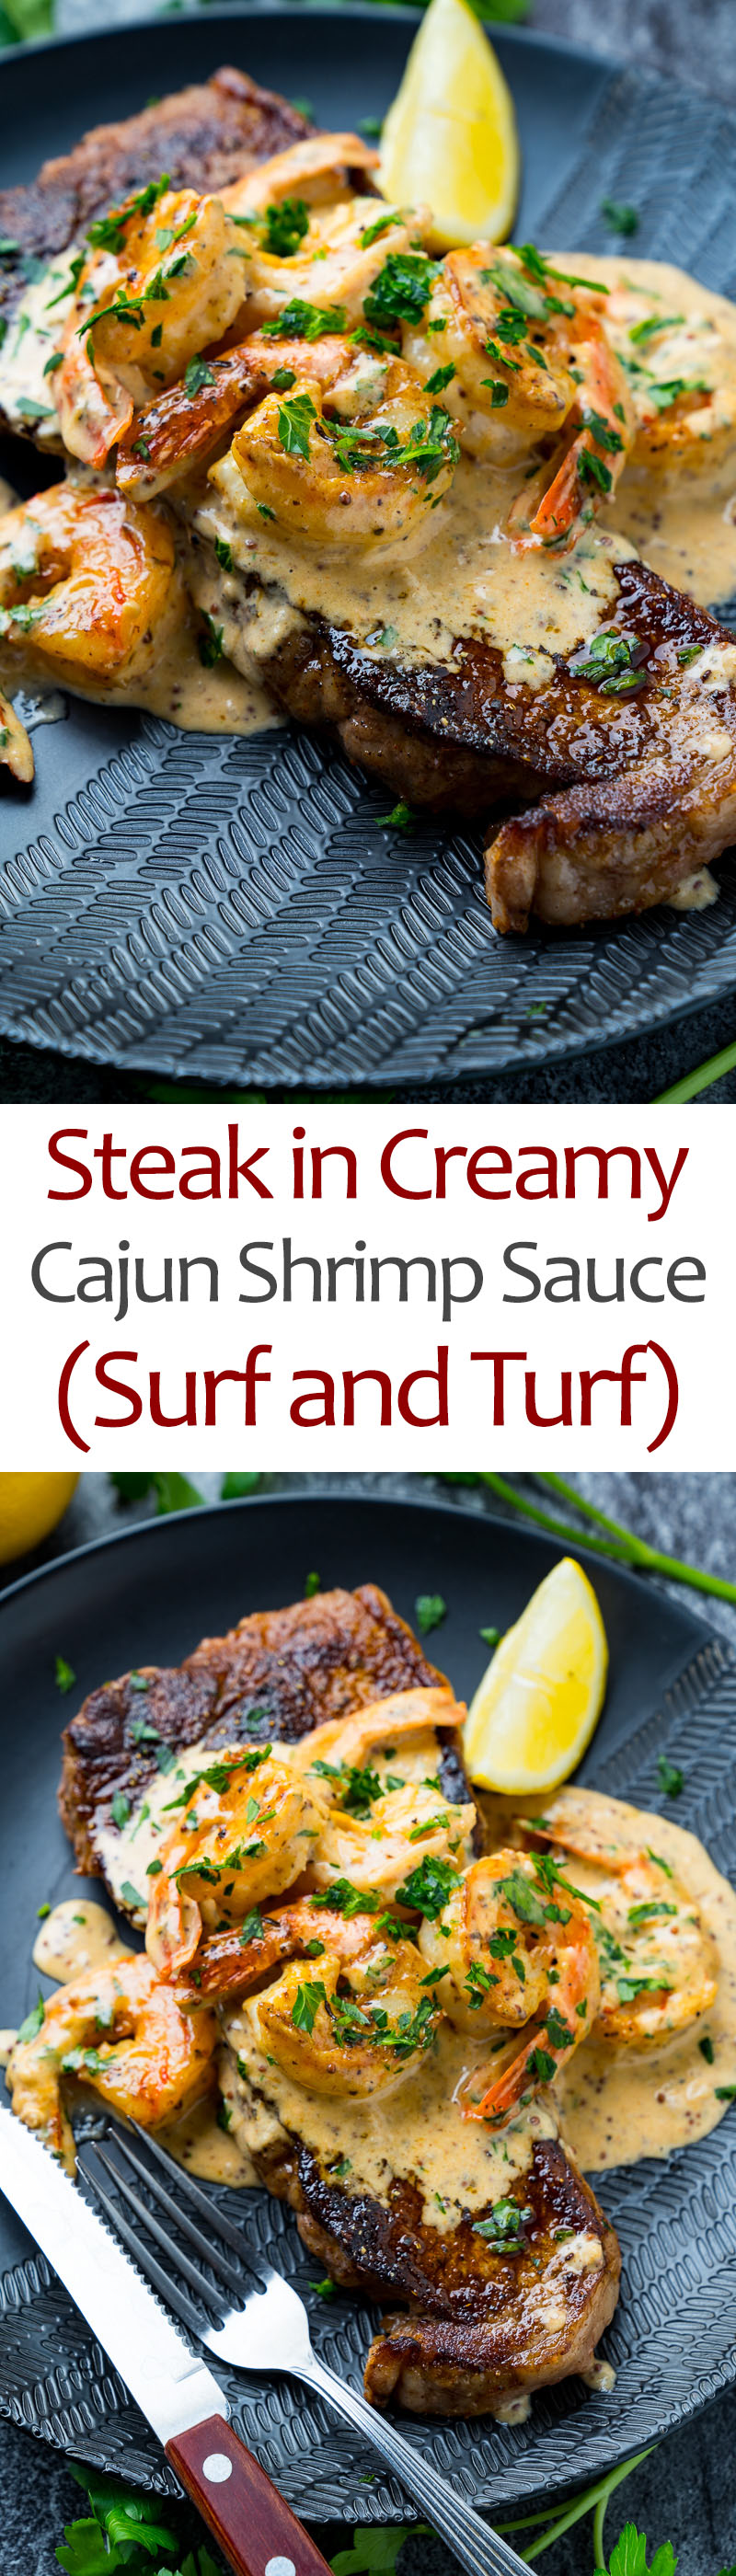 Steak in Creamy Cajun Shrimp Sauce (Surf and Turf)